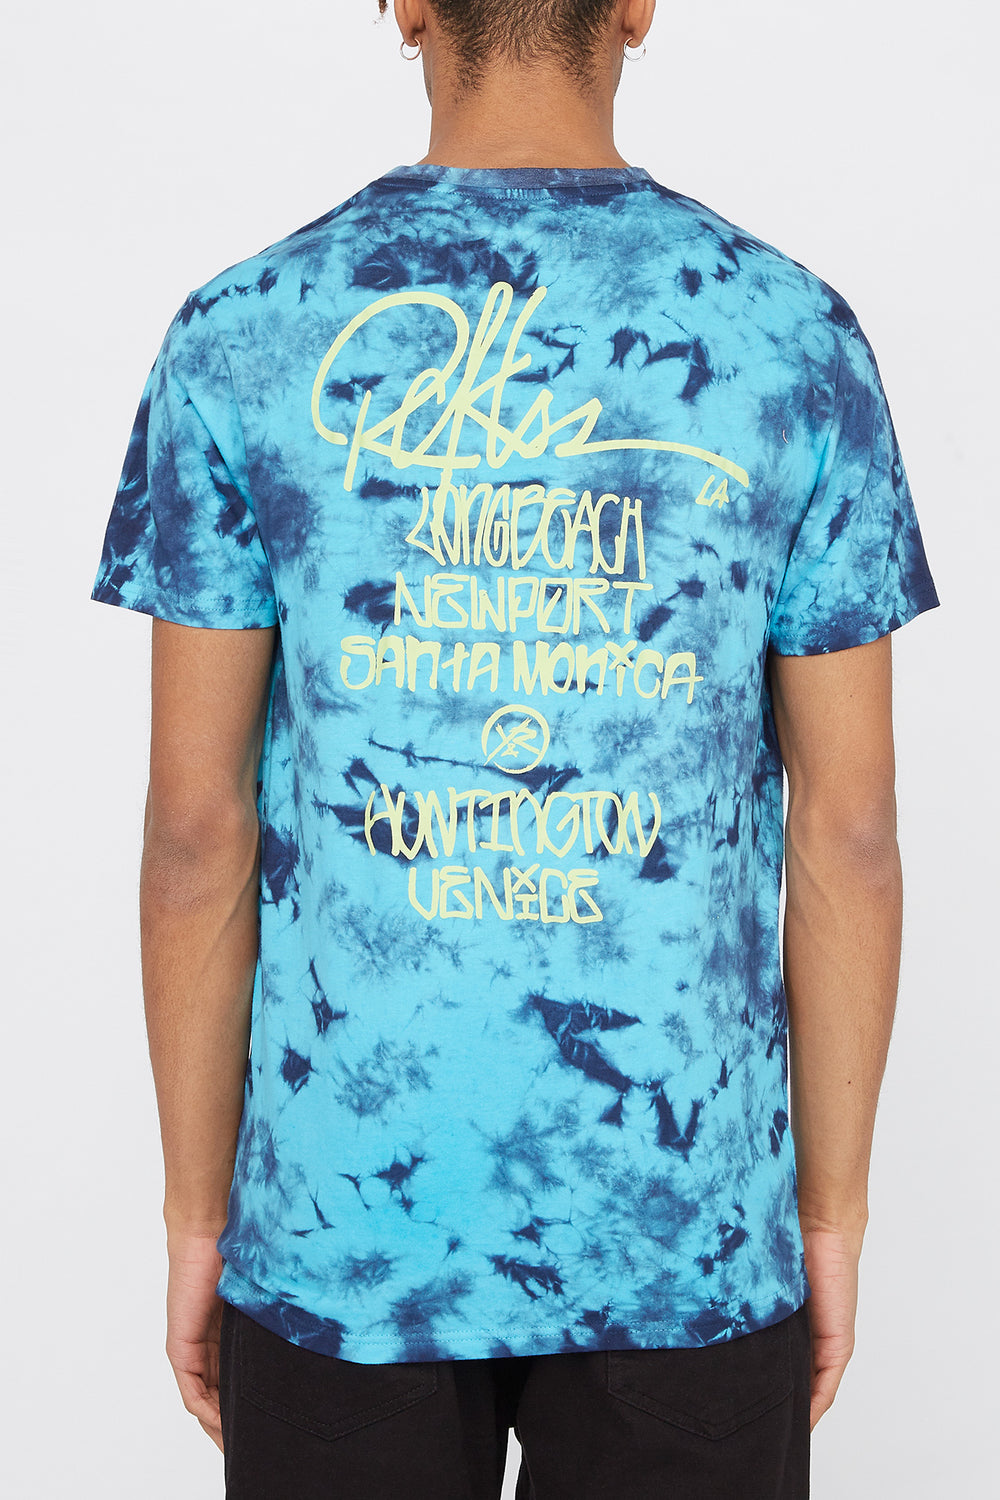 T-Shirt Tie-Dye Cities of LA Young & Reckless Homme Bleu